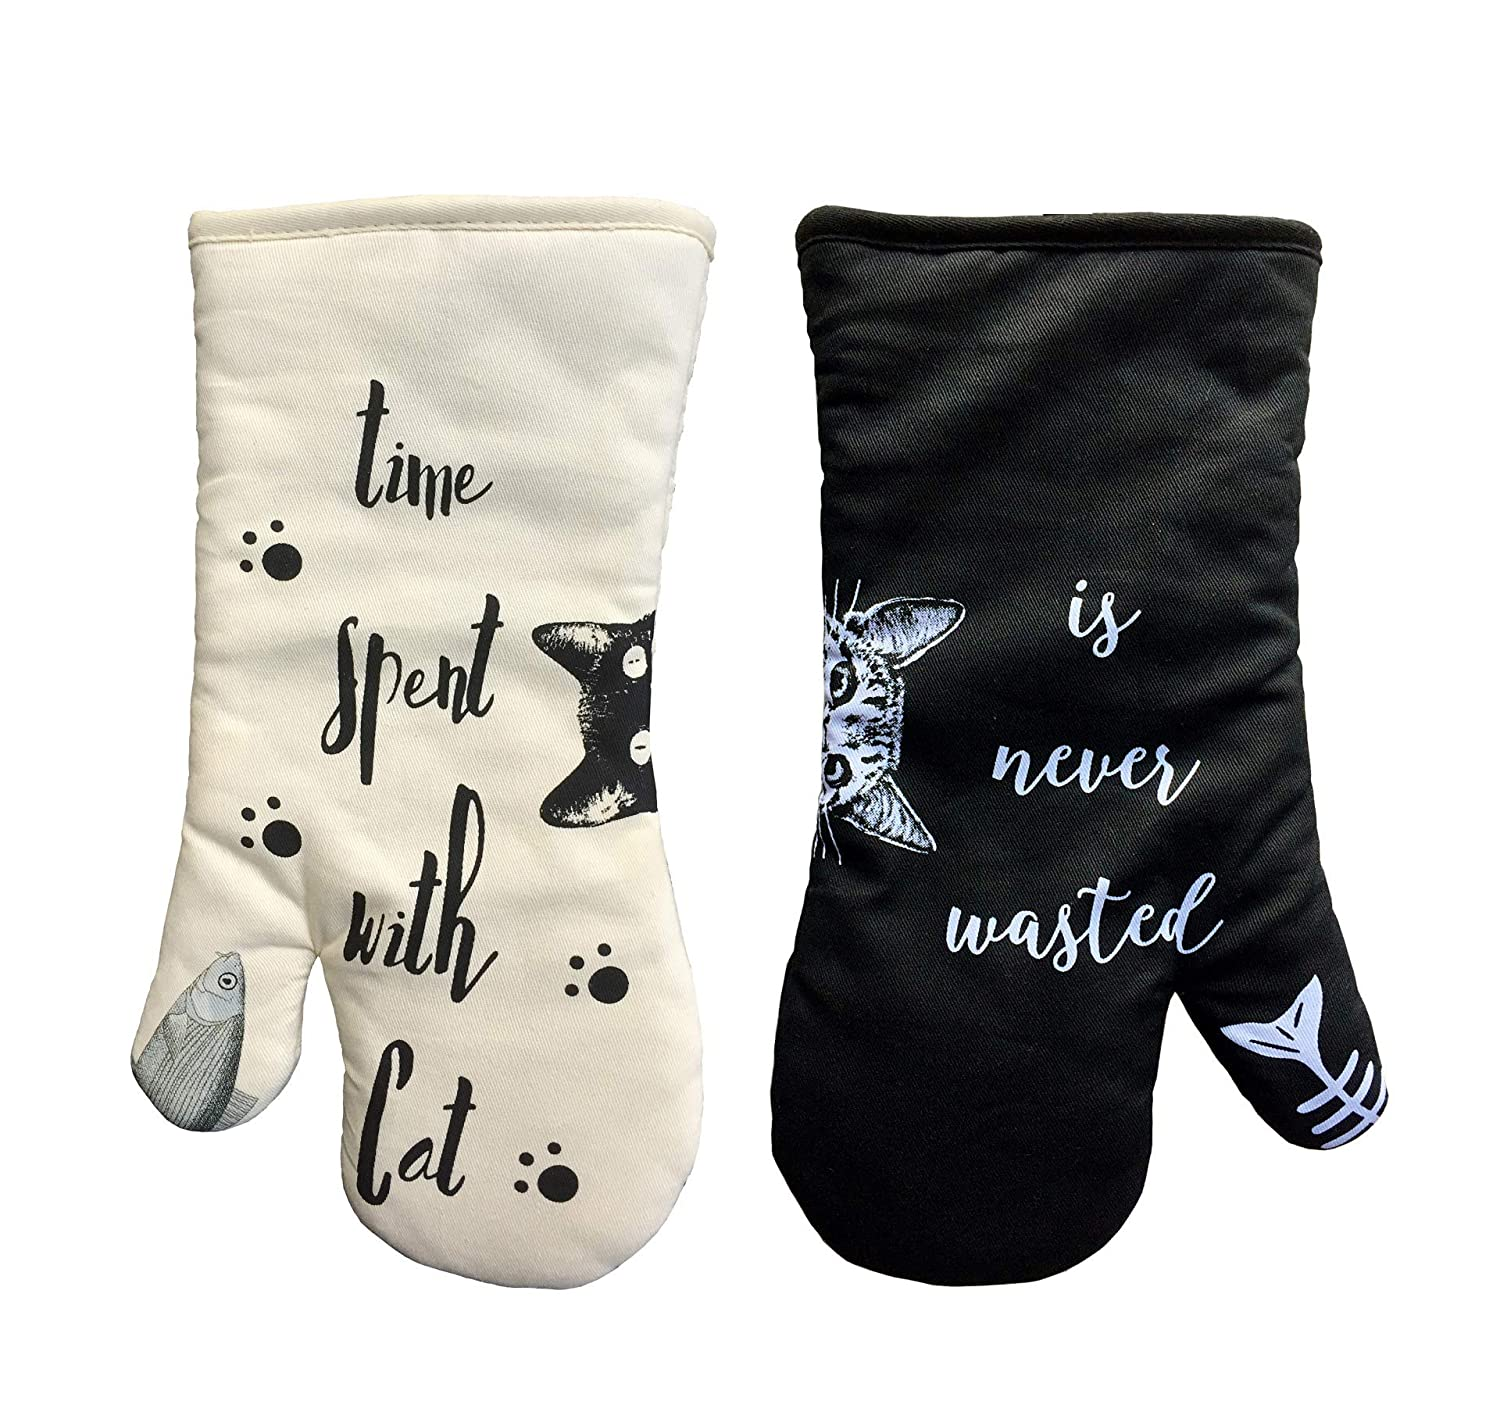 AIYUE Oven Mitts, Thick Cotton Kitchen Oven mitt | Funny Cat Oven Gloves with Long Sleeves | Heat Resistant to 482 °F | Machine Washable | Suitable for Cooking Baking BBQ